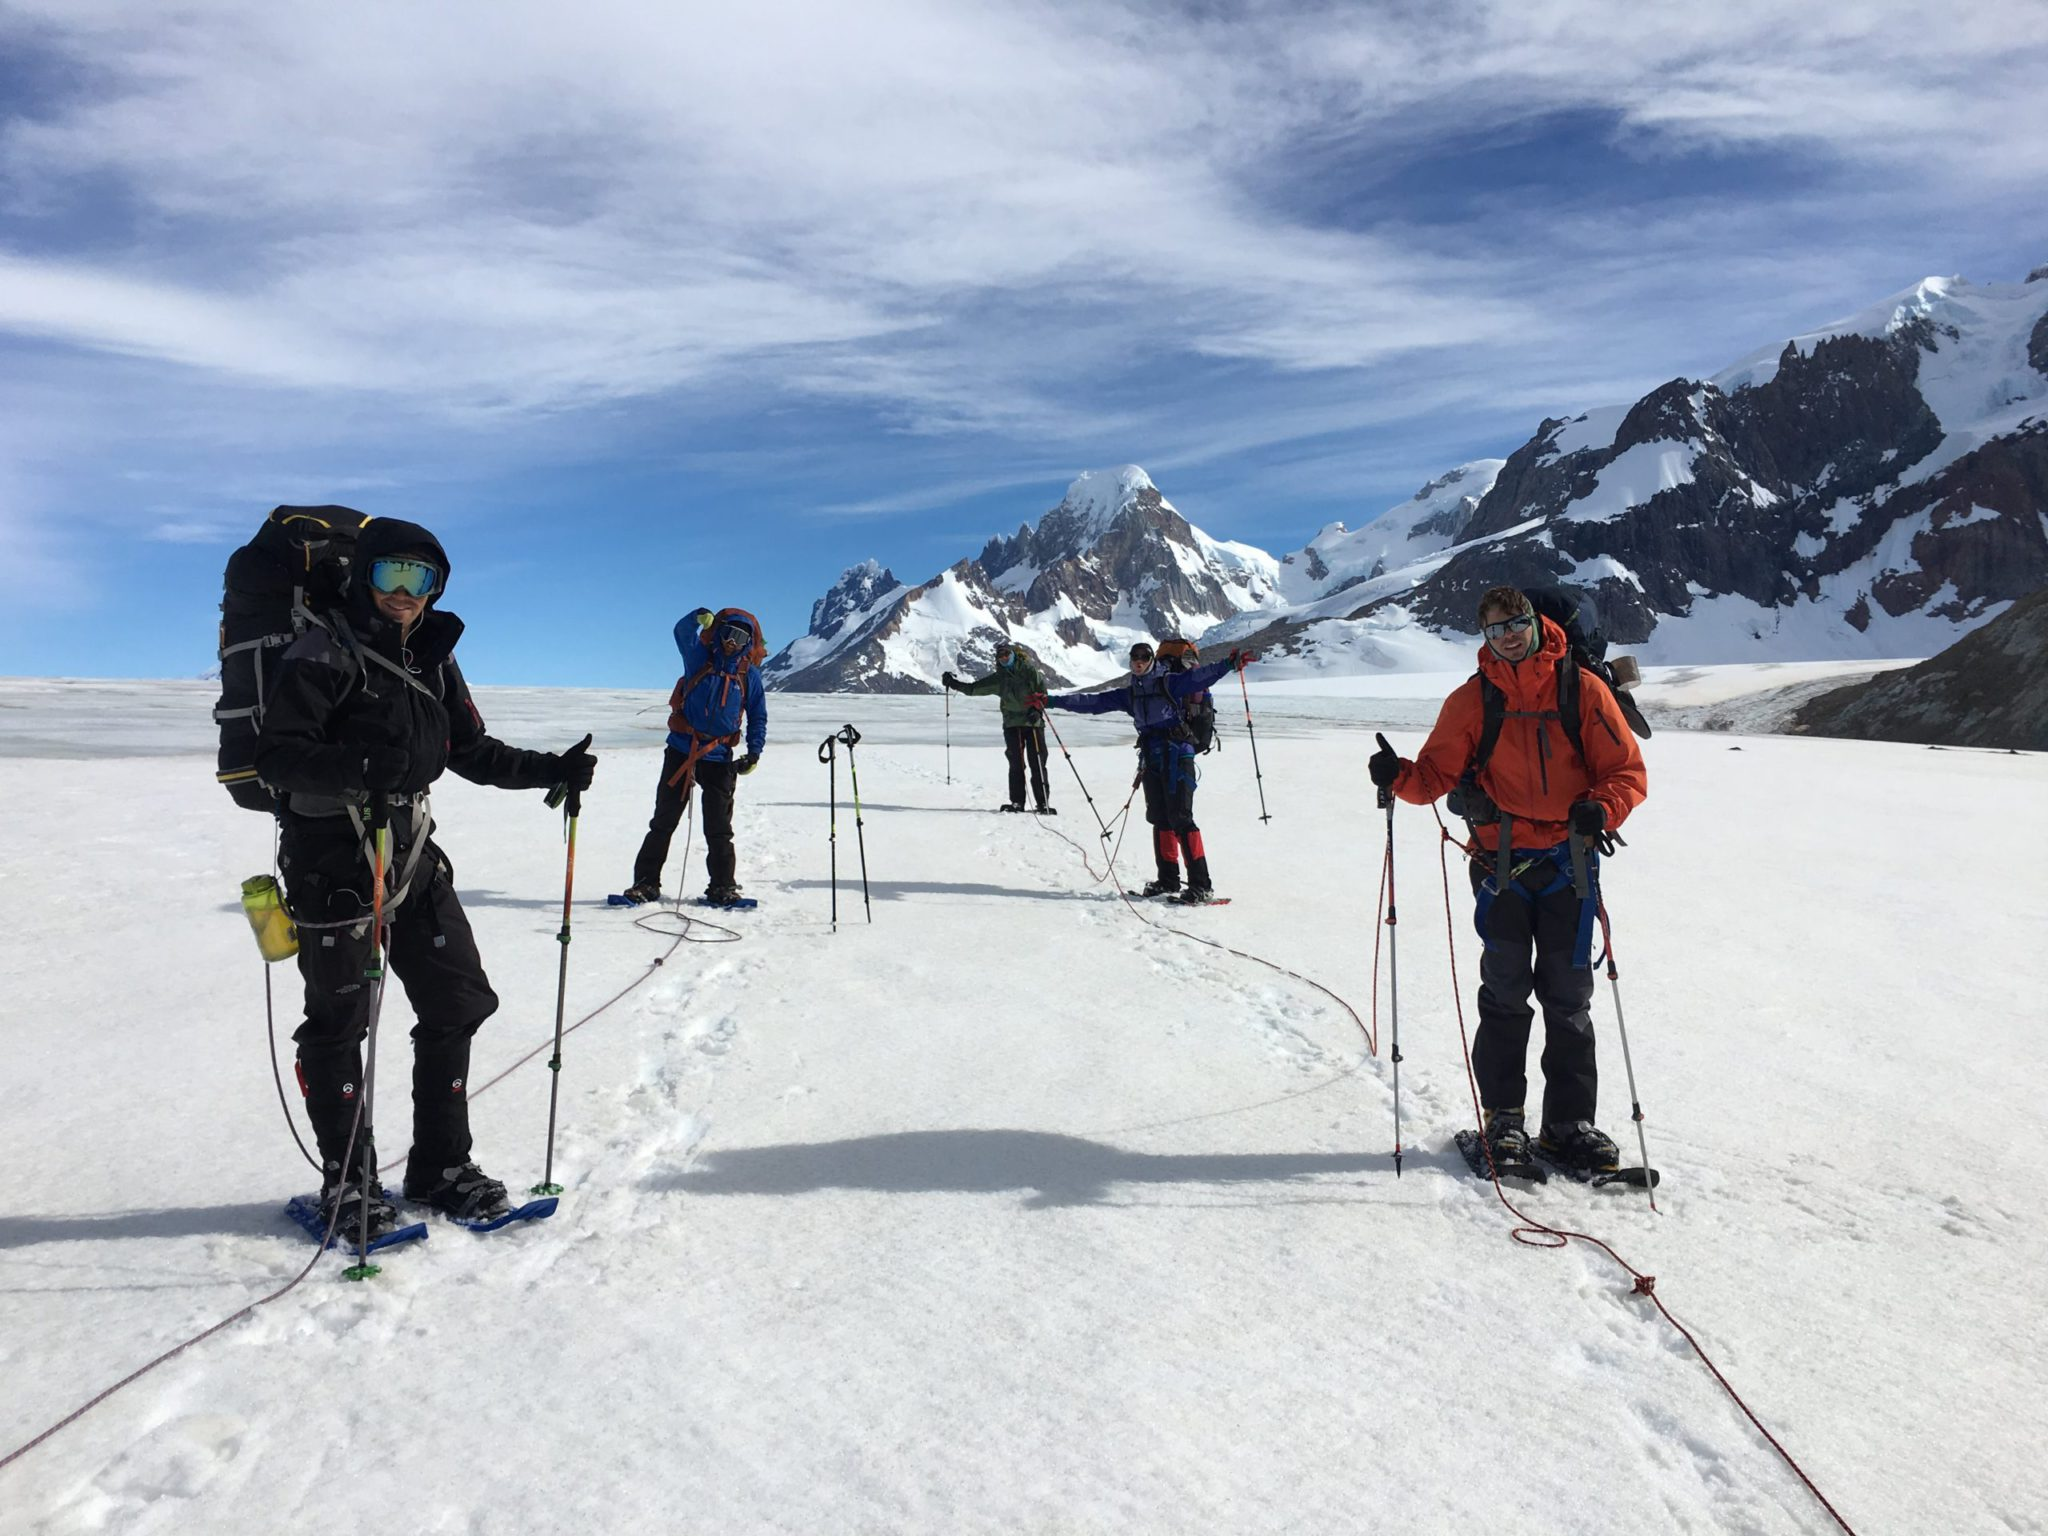 Southern Patagonian Icefield expedition: Argentina mountaineering